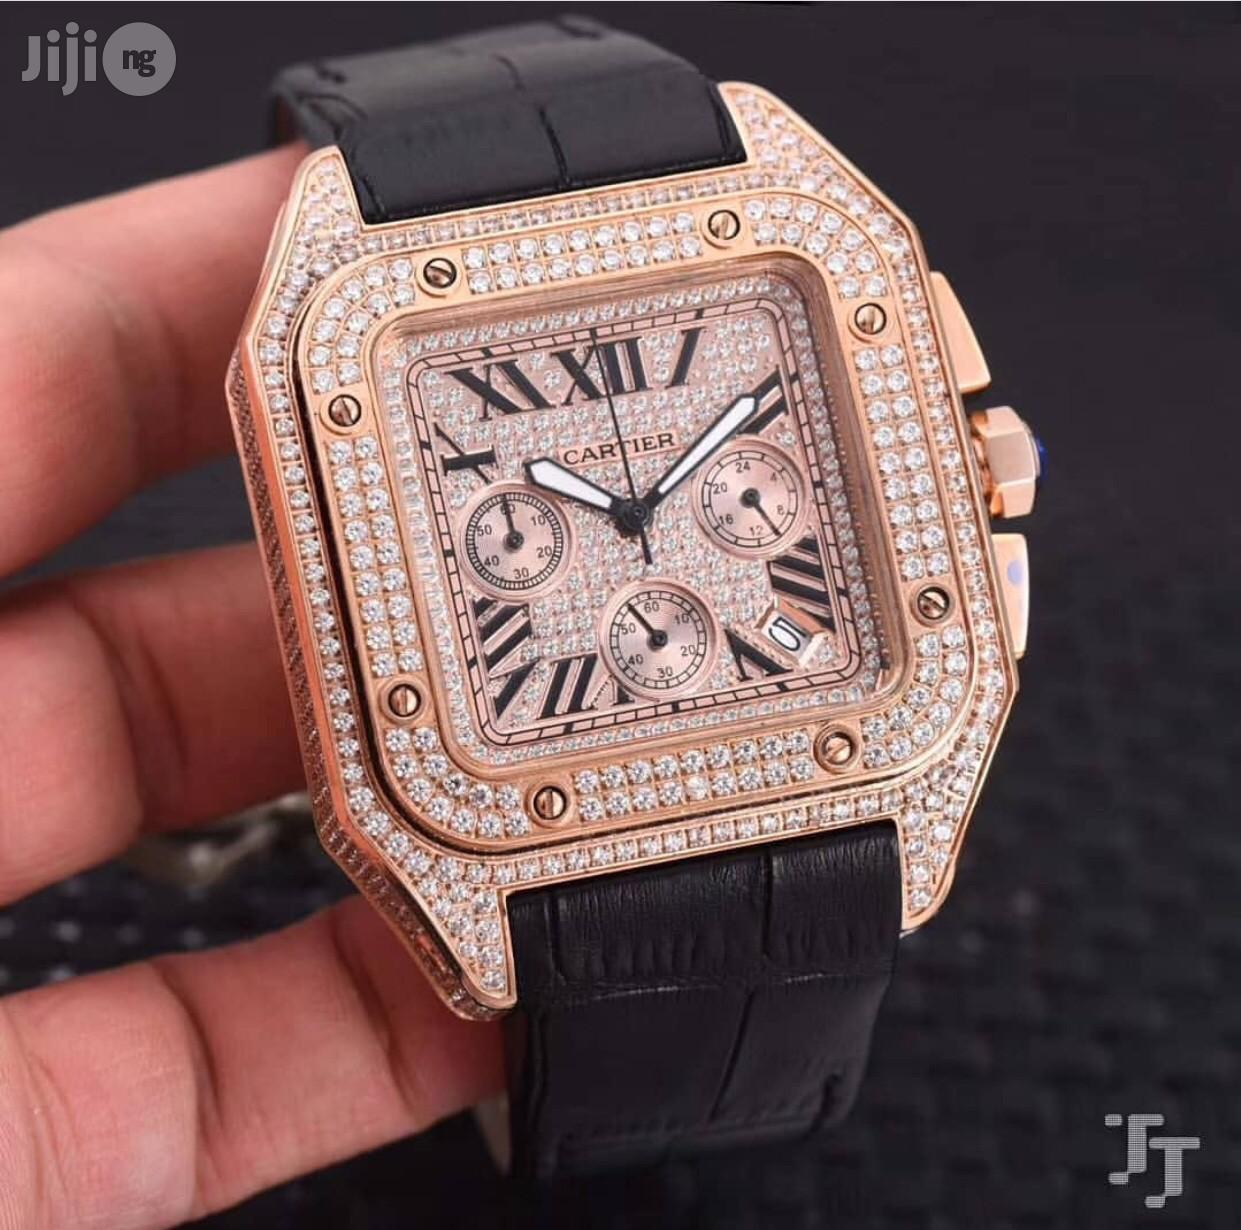 Cartier Ice Studded Chronograph Genuine Leather Strap Watch